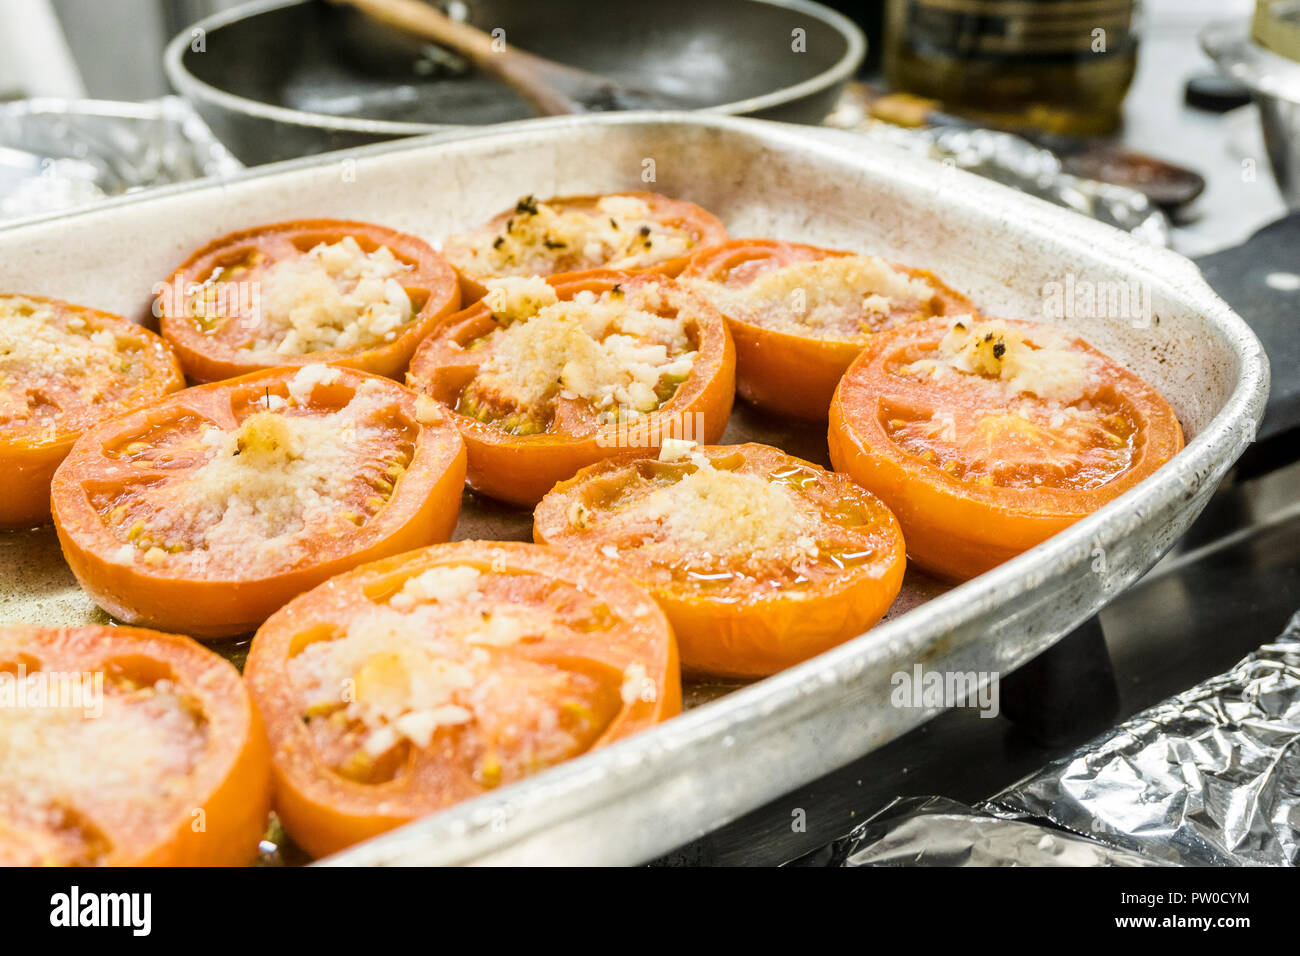 Delicious baked tomatoes with melted cheese on top in oven pan Stock Photo